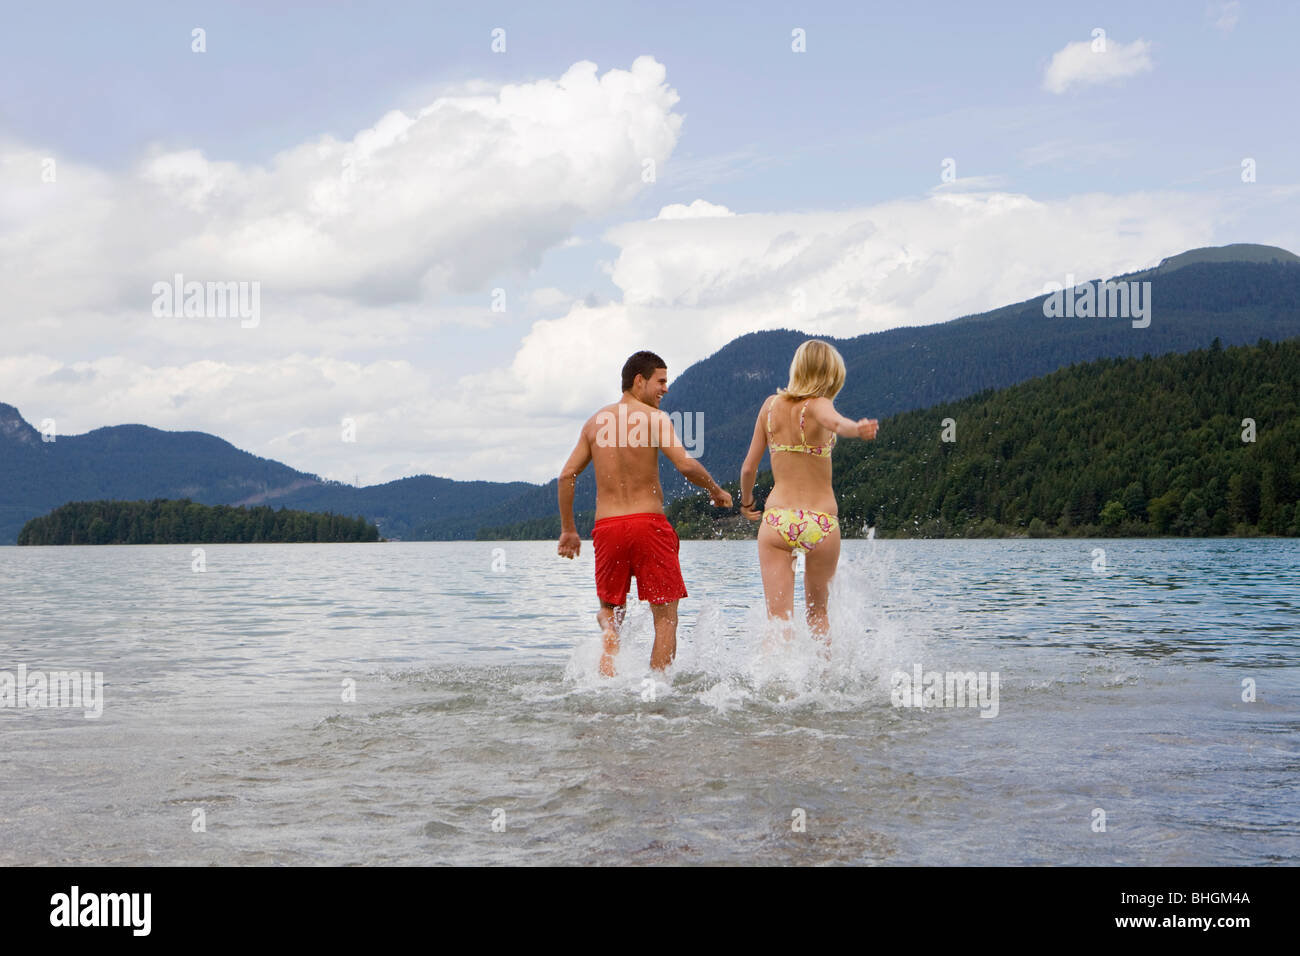 A couple running into the water - Stock Image